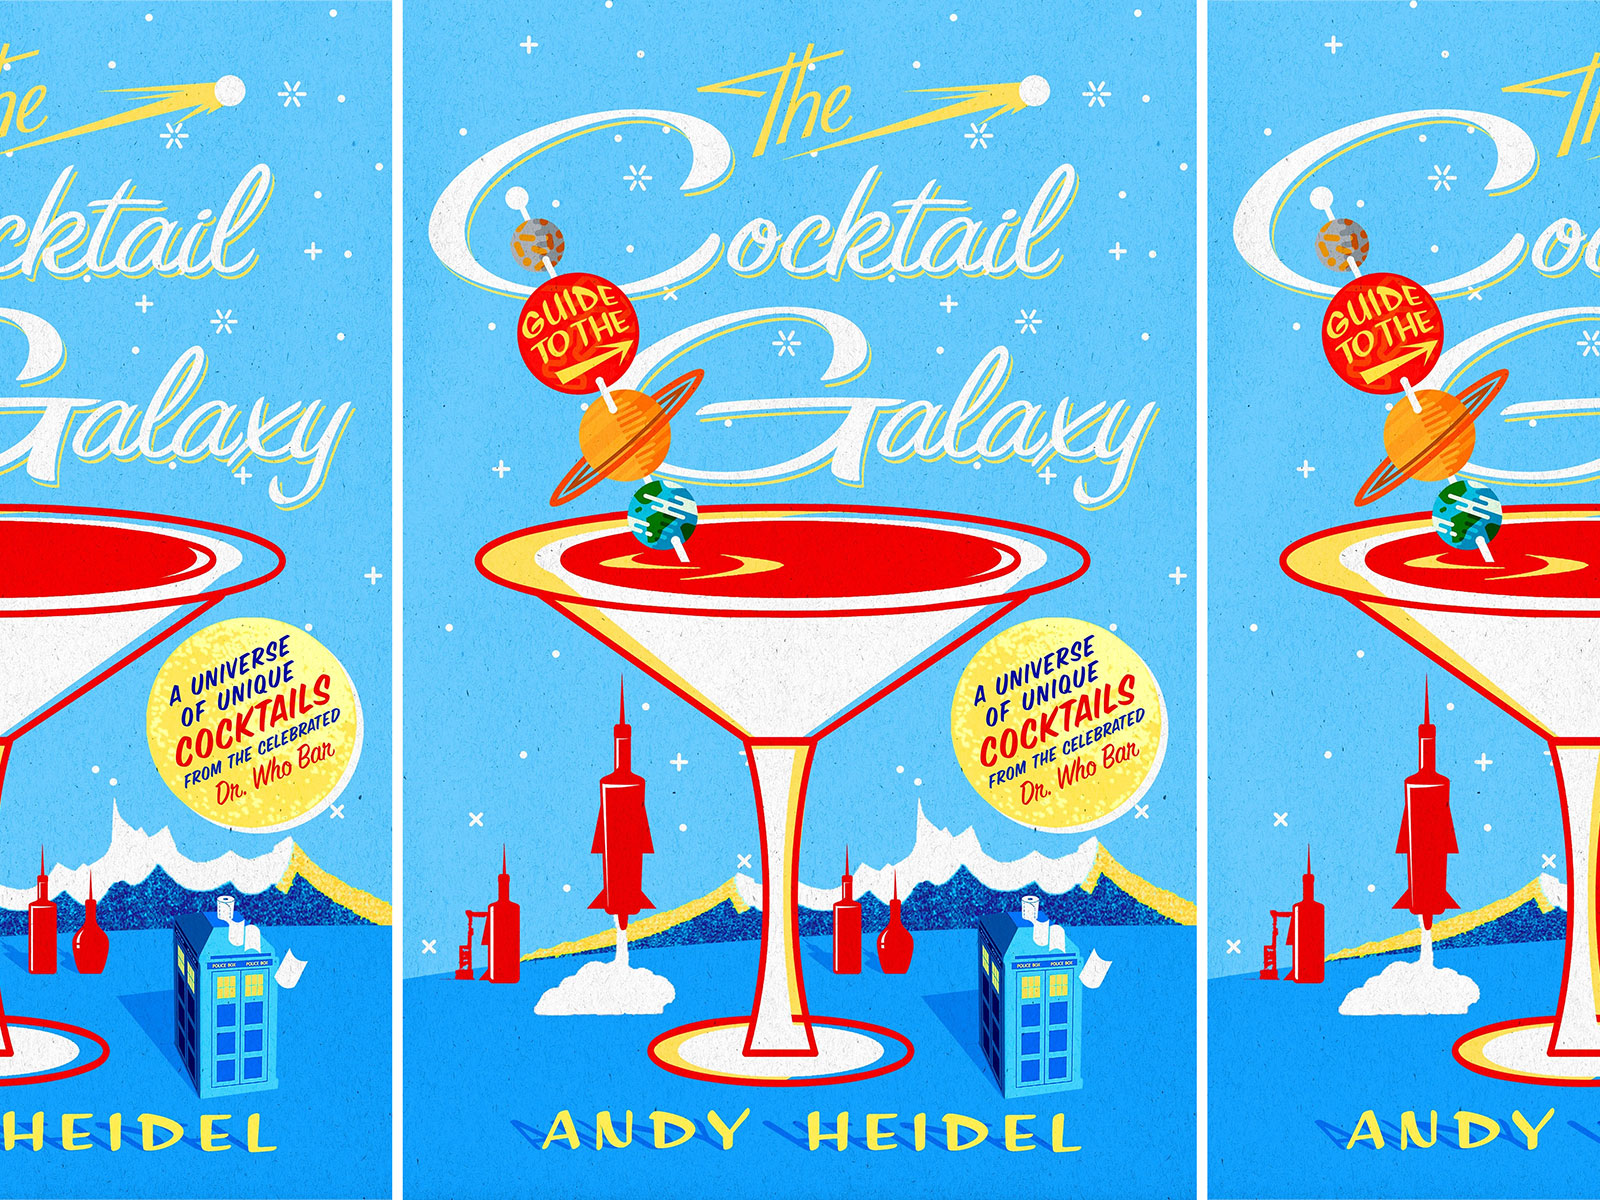 cocktails guide to the galaxy book cover